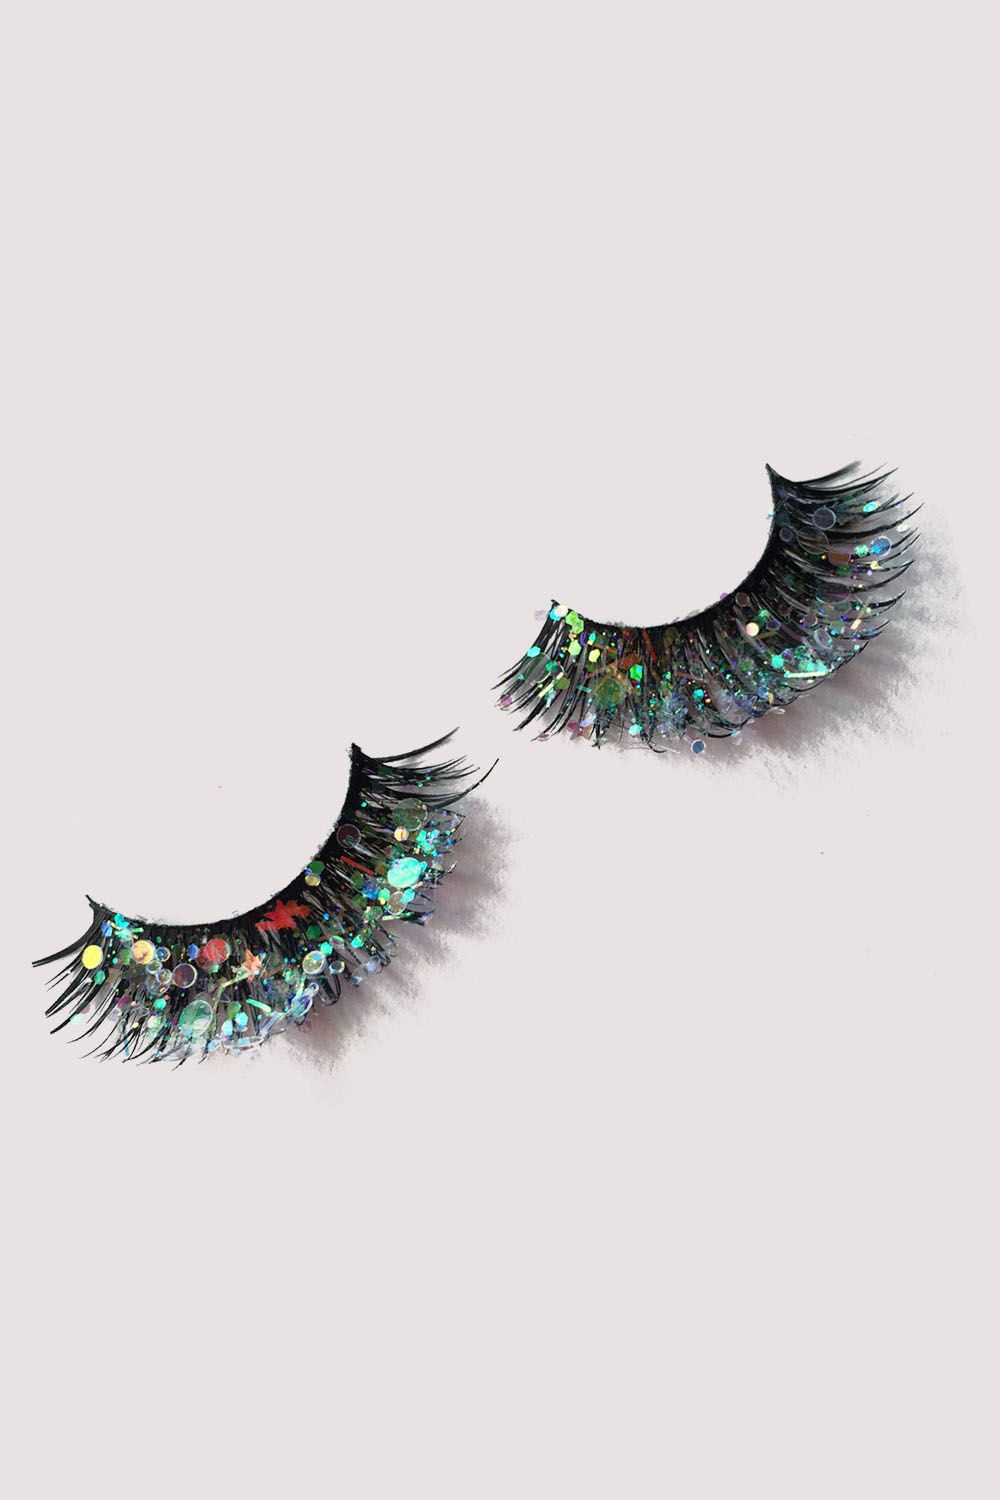 """<p>If you want to do the most, holographic-star-encrusted lashes pair nicely with <a href=""""http://www.marieclaire.com/beauty/news/a16952/glitter-roots-trend/"""" target=""""_blank"""" data-tracking-id=""""recirc-text-link"""">glitter roots</a>.</p><p>SparklePigGlitter Holographic Fairy Lashes, $8.35&#x3B; <a href=""""https://www.etsy.com/listing/467284670/holographic-fairy-lashes?ga_order=most_relevant&amp&#x3B;ga_search_type=all&amp&#x3B;ga_view_type=gallery&amp&#x3B;ga_search_query=false%20lashes&amp&#x3B;ref=sr_gallery_47"""" target=""""_blank"""" data-tracking-id=""""recirc-text-link"""">etsy.com</a>.</p>"""